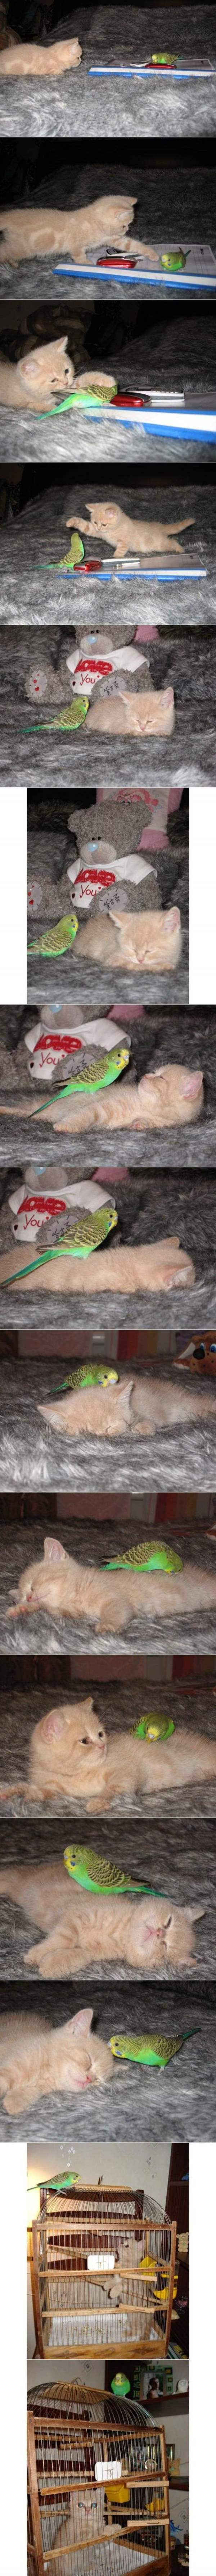 Cute Pictures Cat And Parakeet